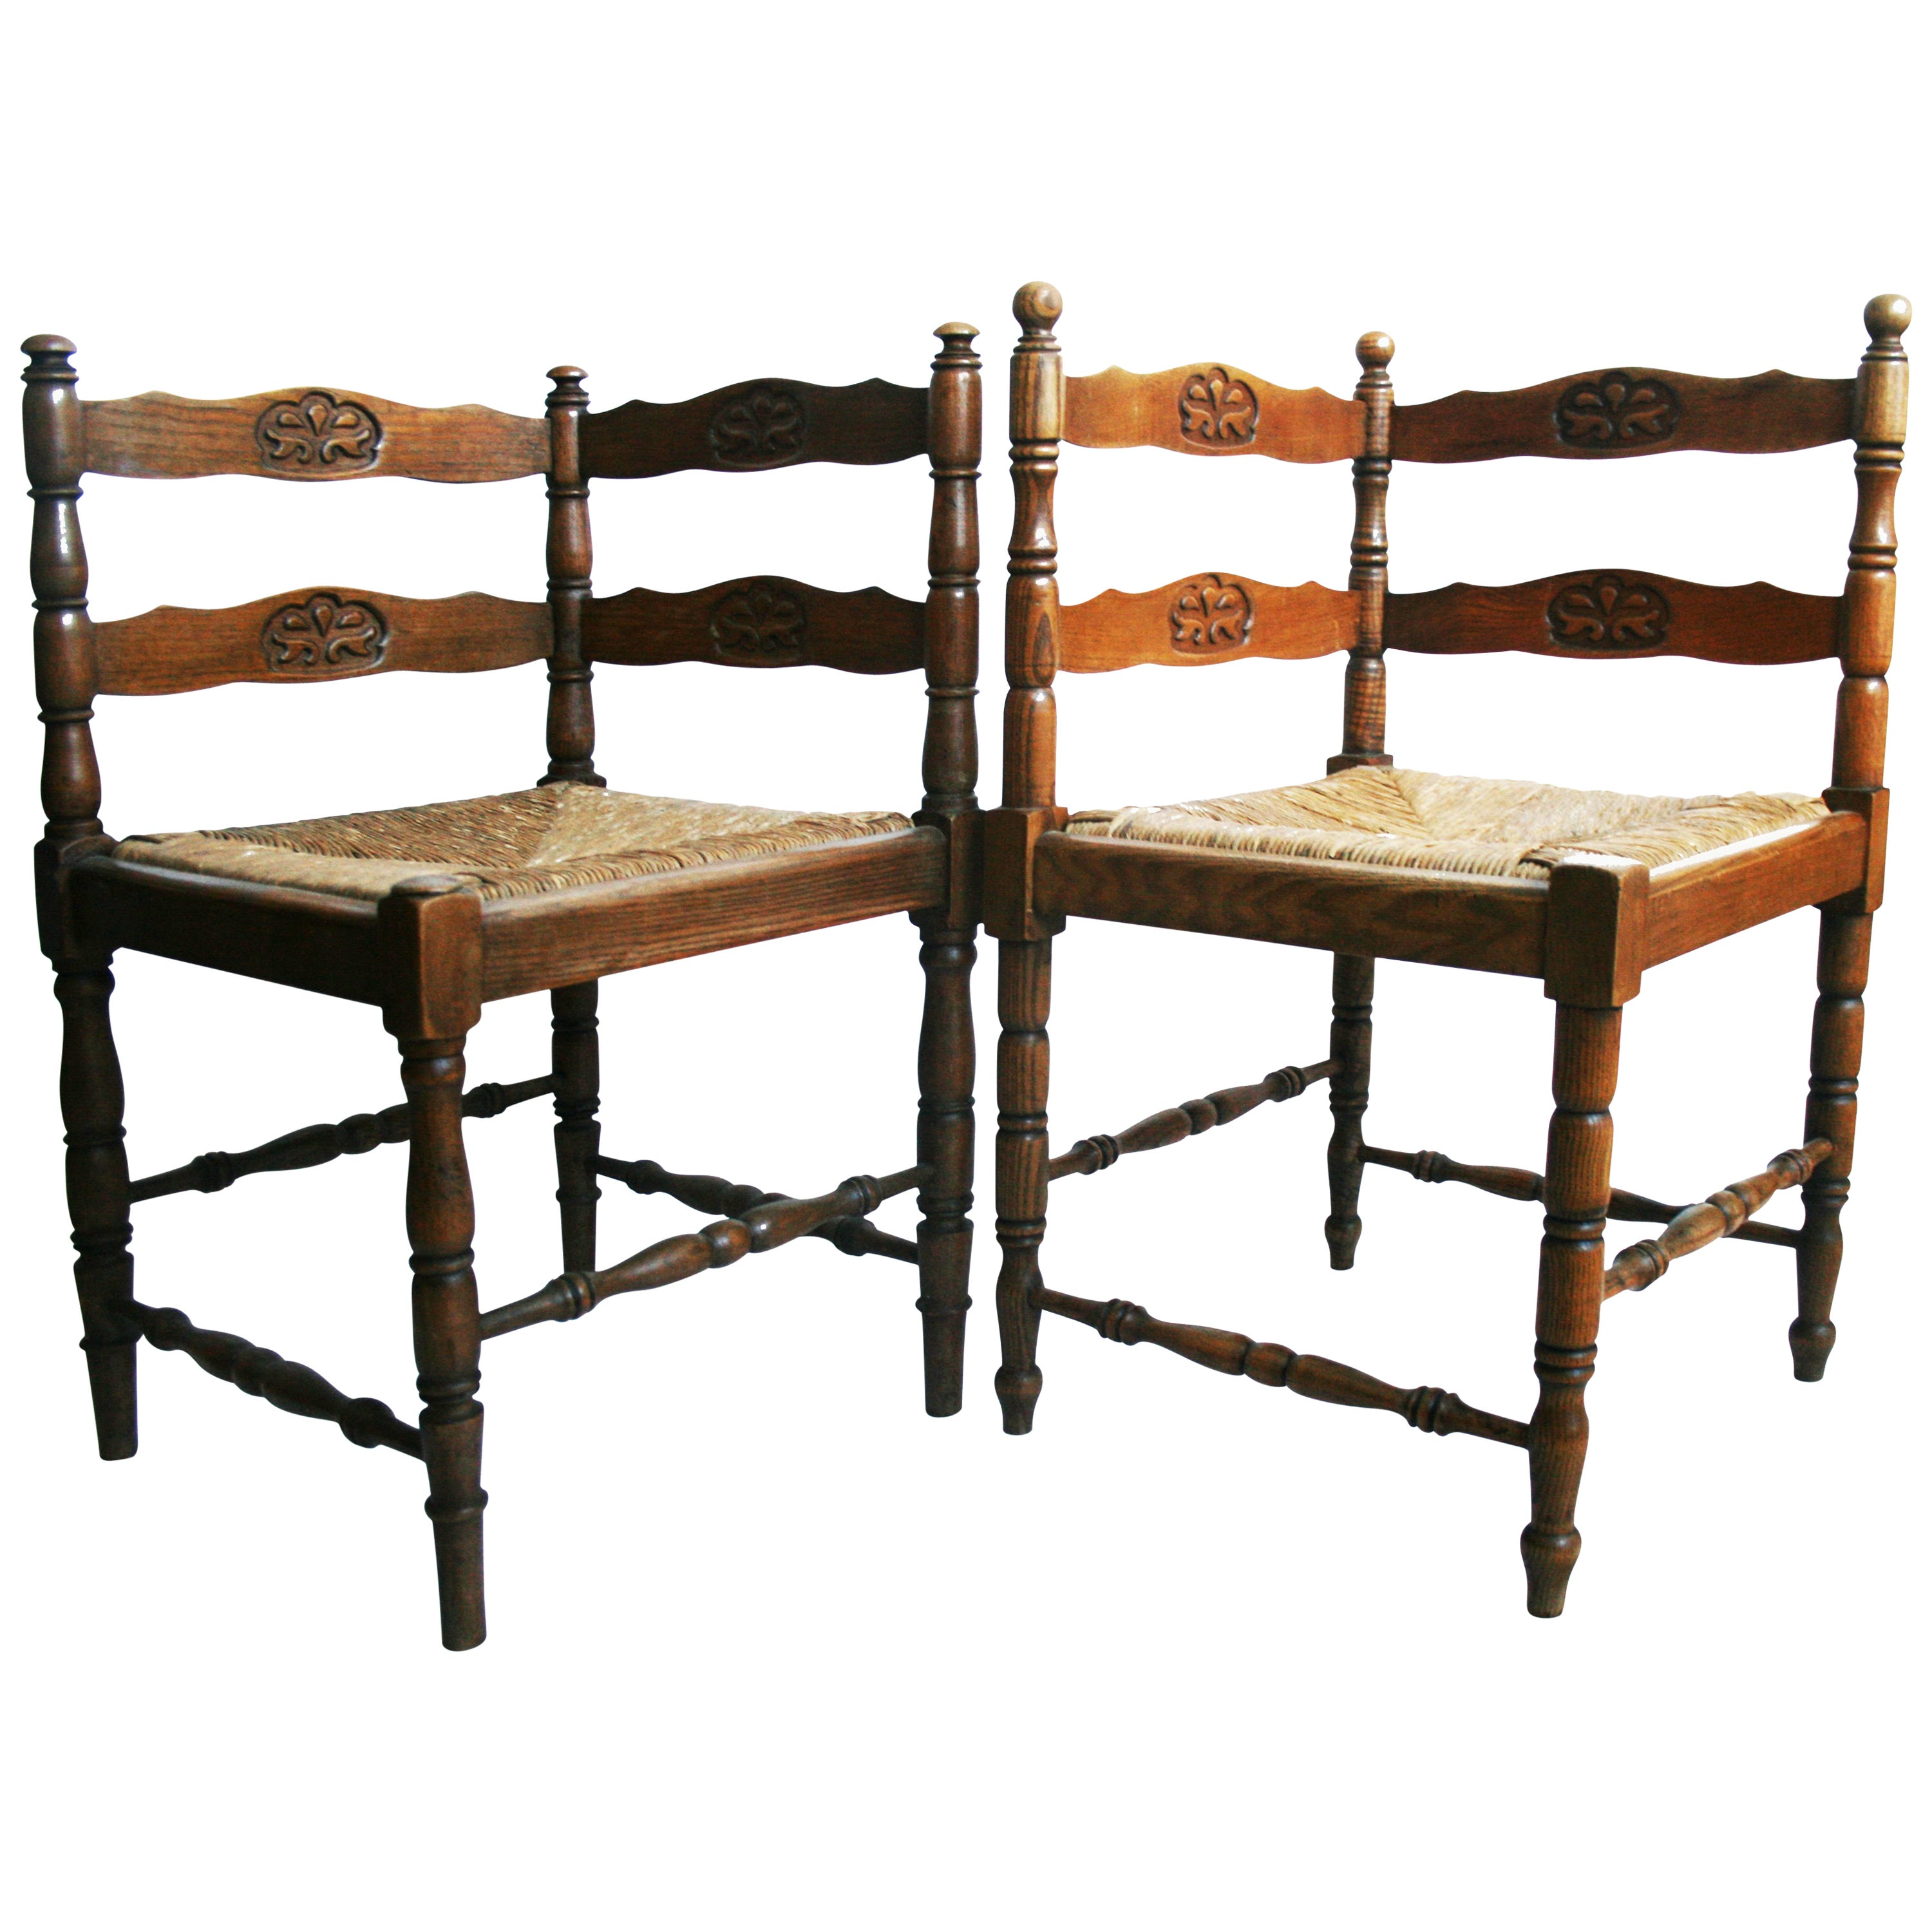 Pair of Corner Chairs Carved with Rush Seat Turned Legs, France, 19th Century